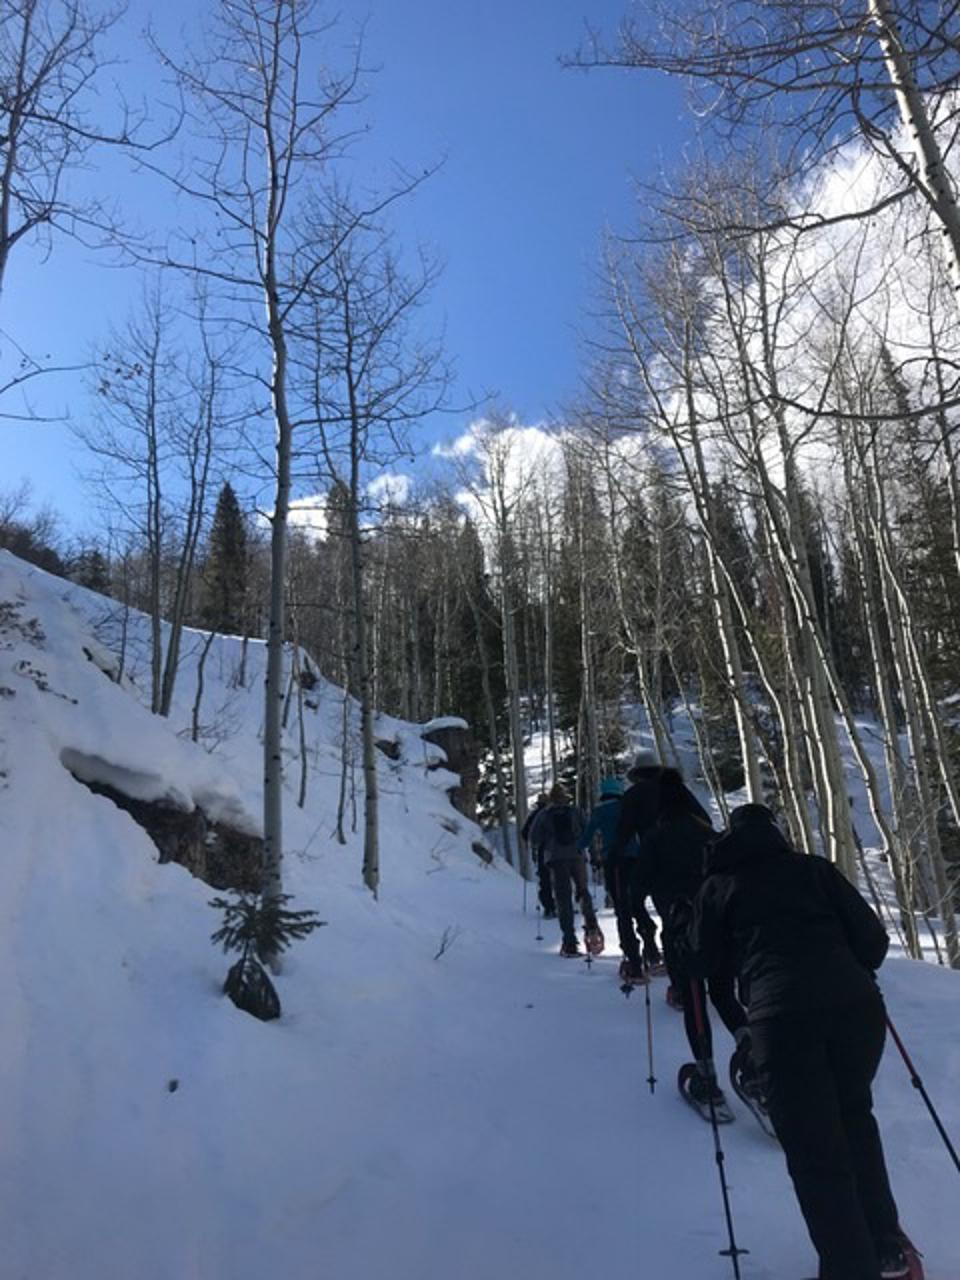 Snowshoeing in conditions like this make for a great cardio day.